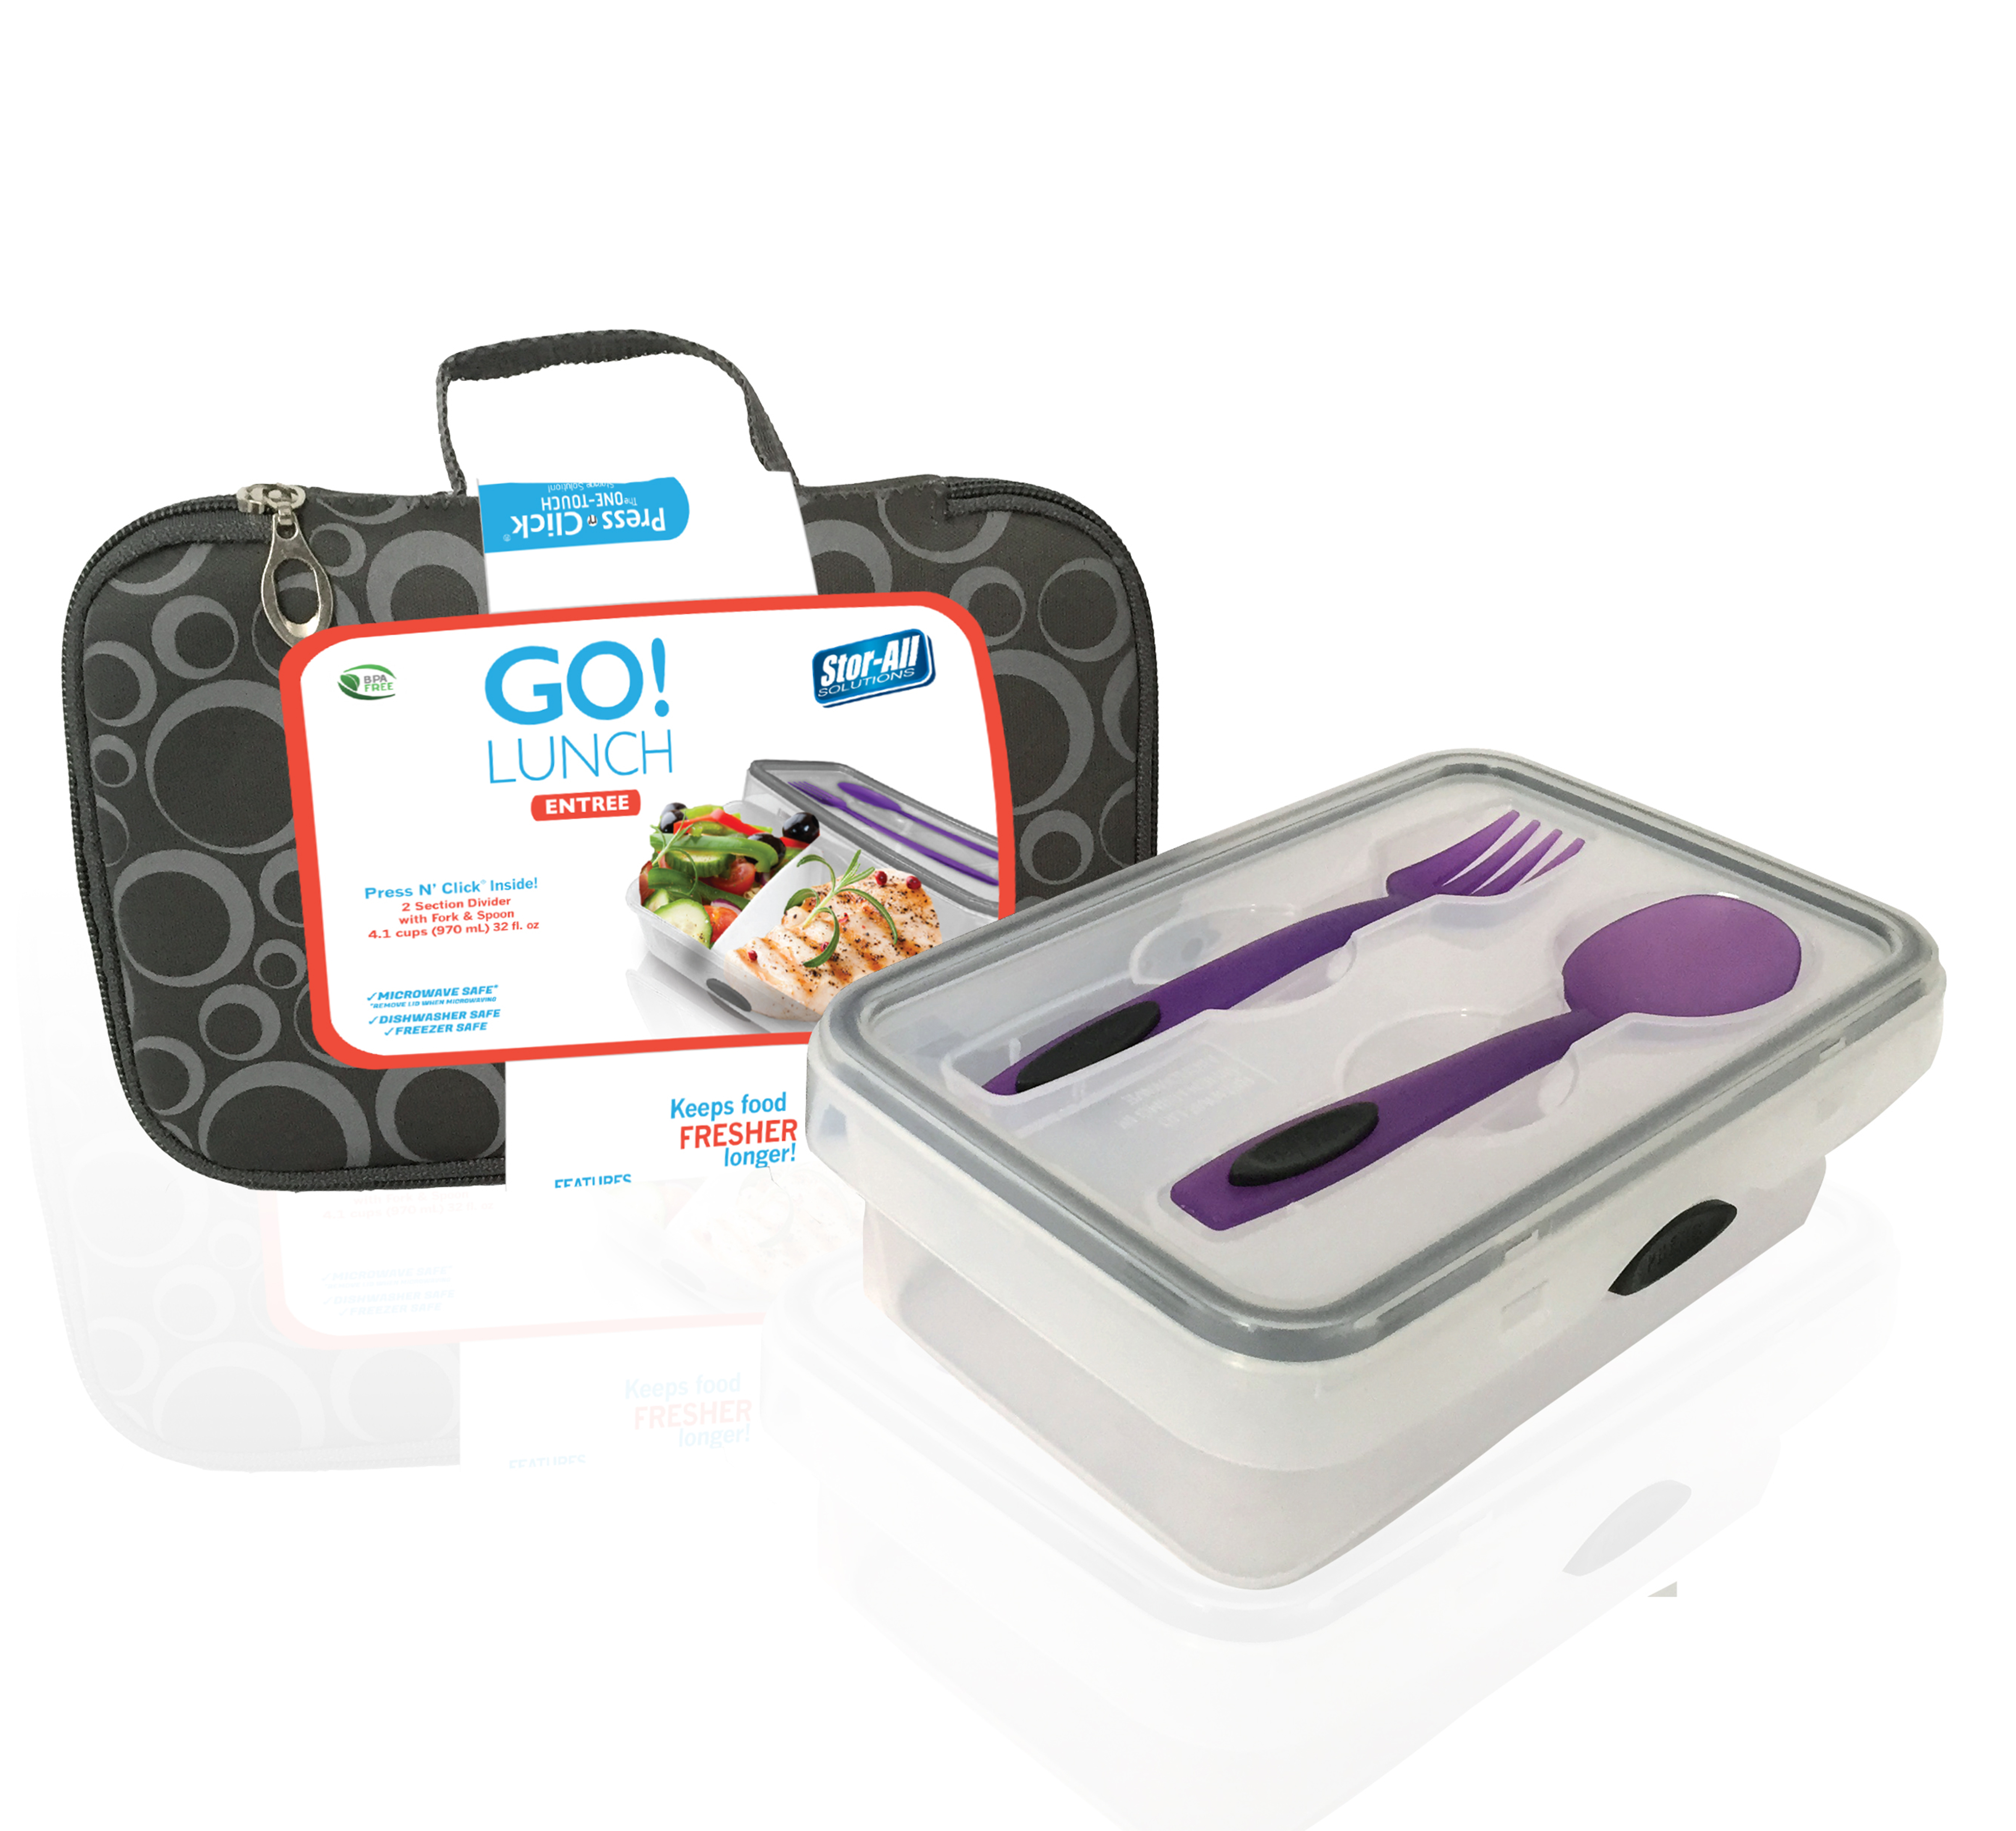 Go! Lunch Entr_e w/ Cutlery (Includes 4.1 Cup Rect. Press N' Click Container)